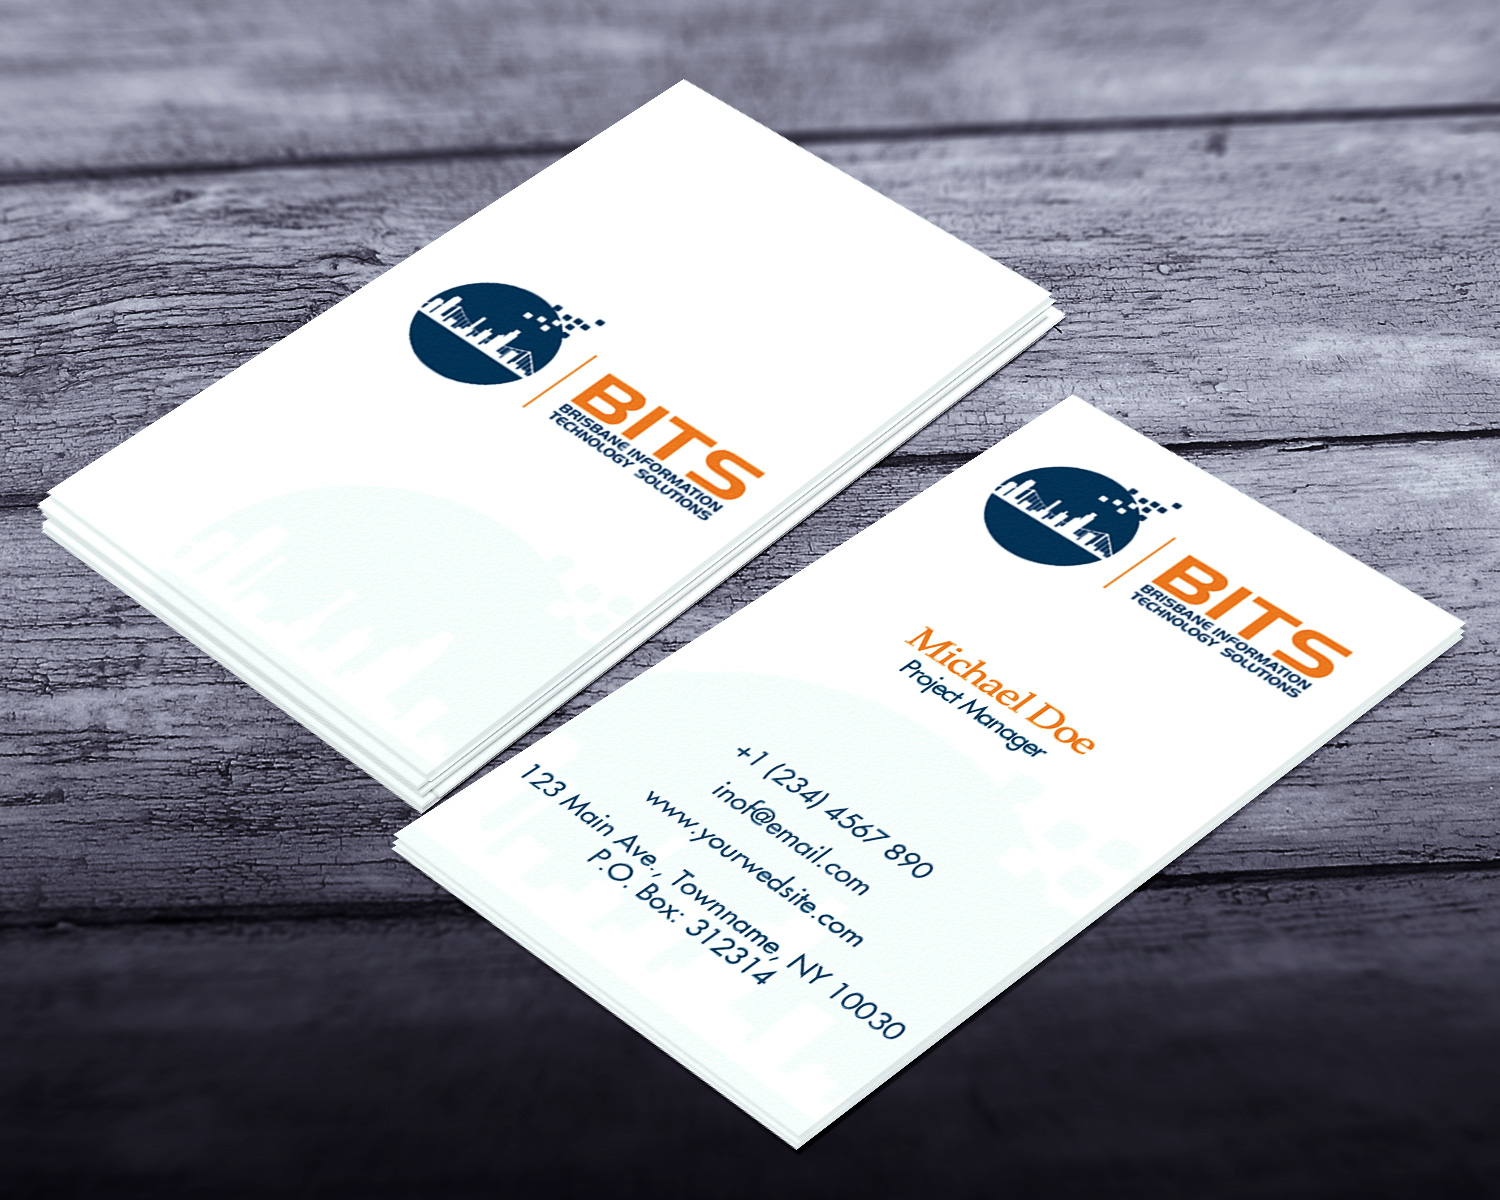 Modern professional business business card design for a company by business card design by creation lanka for this project design 4787356 colourmoves